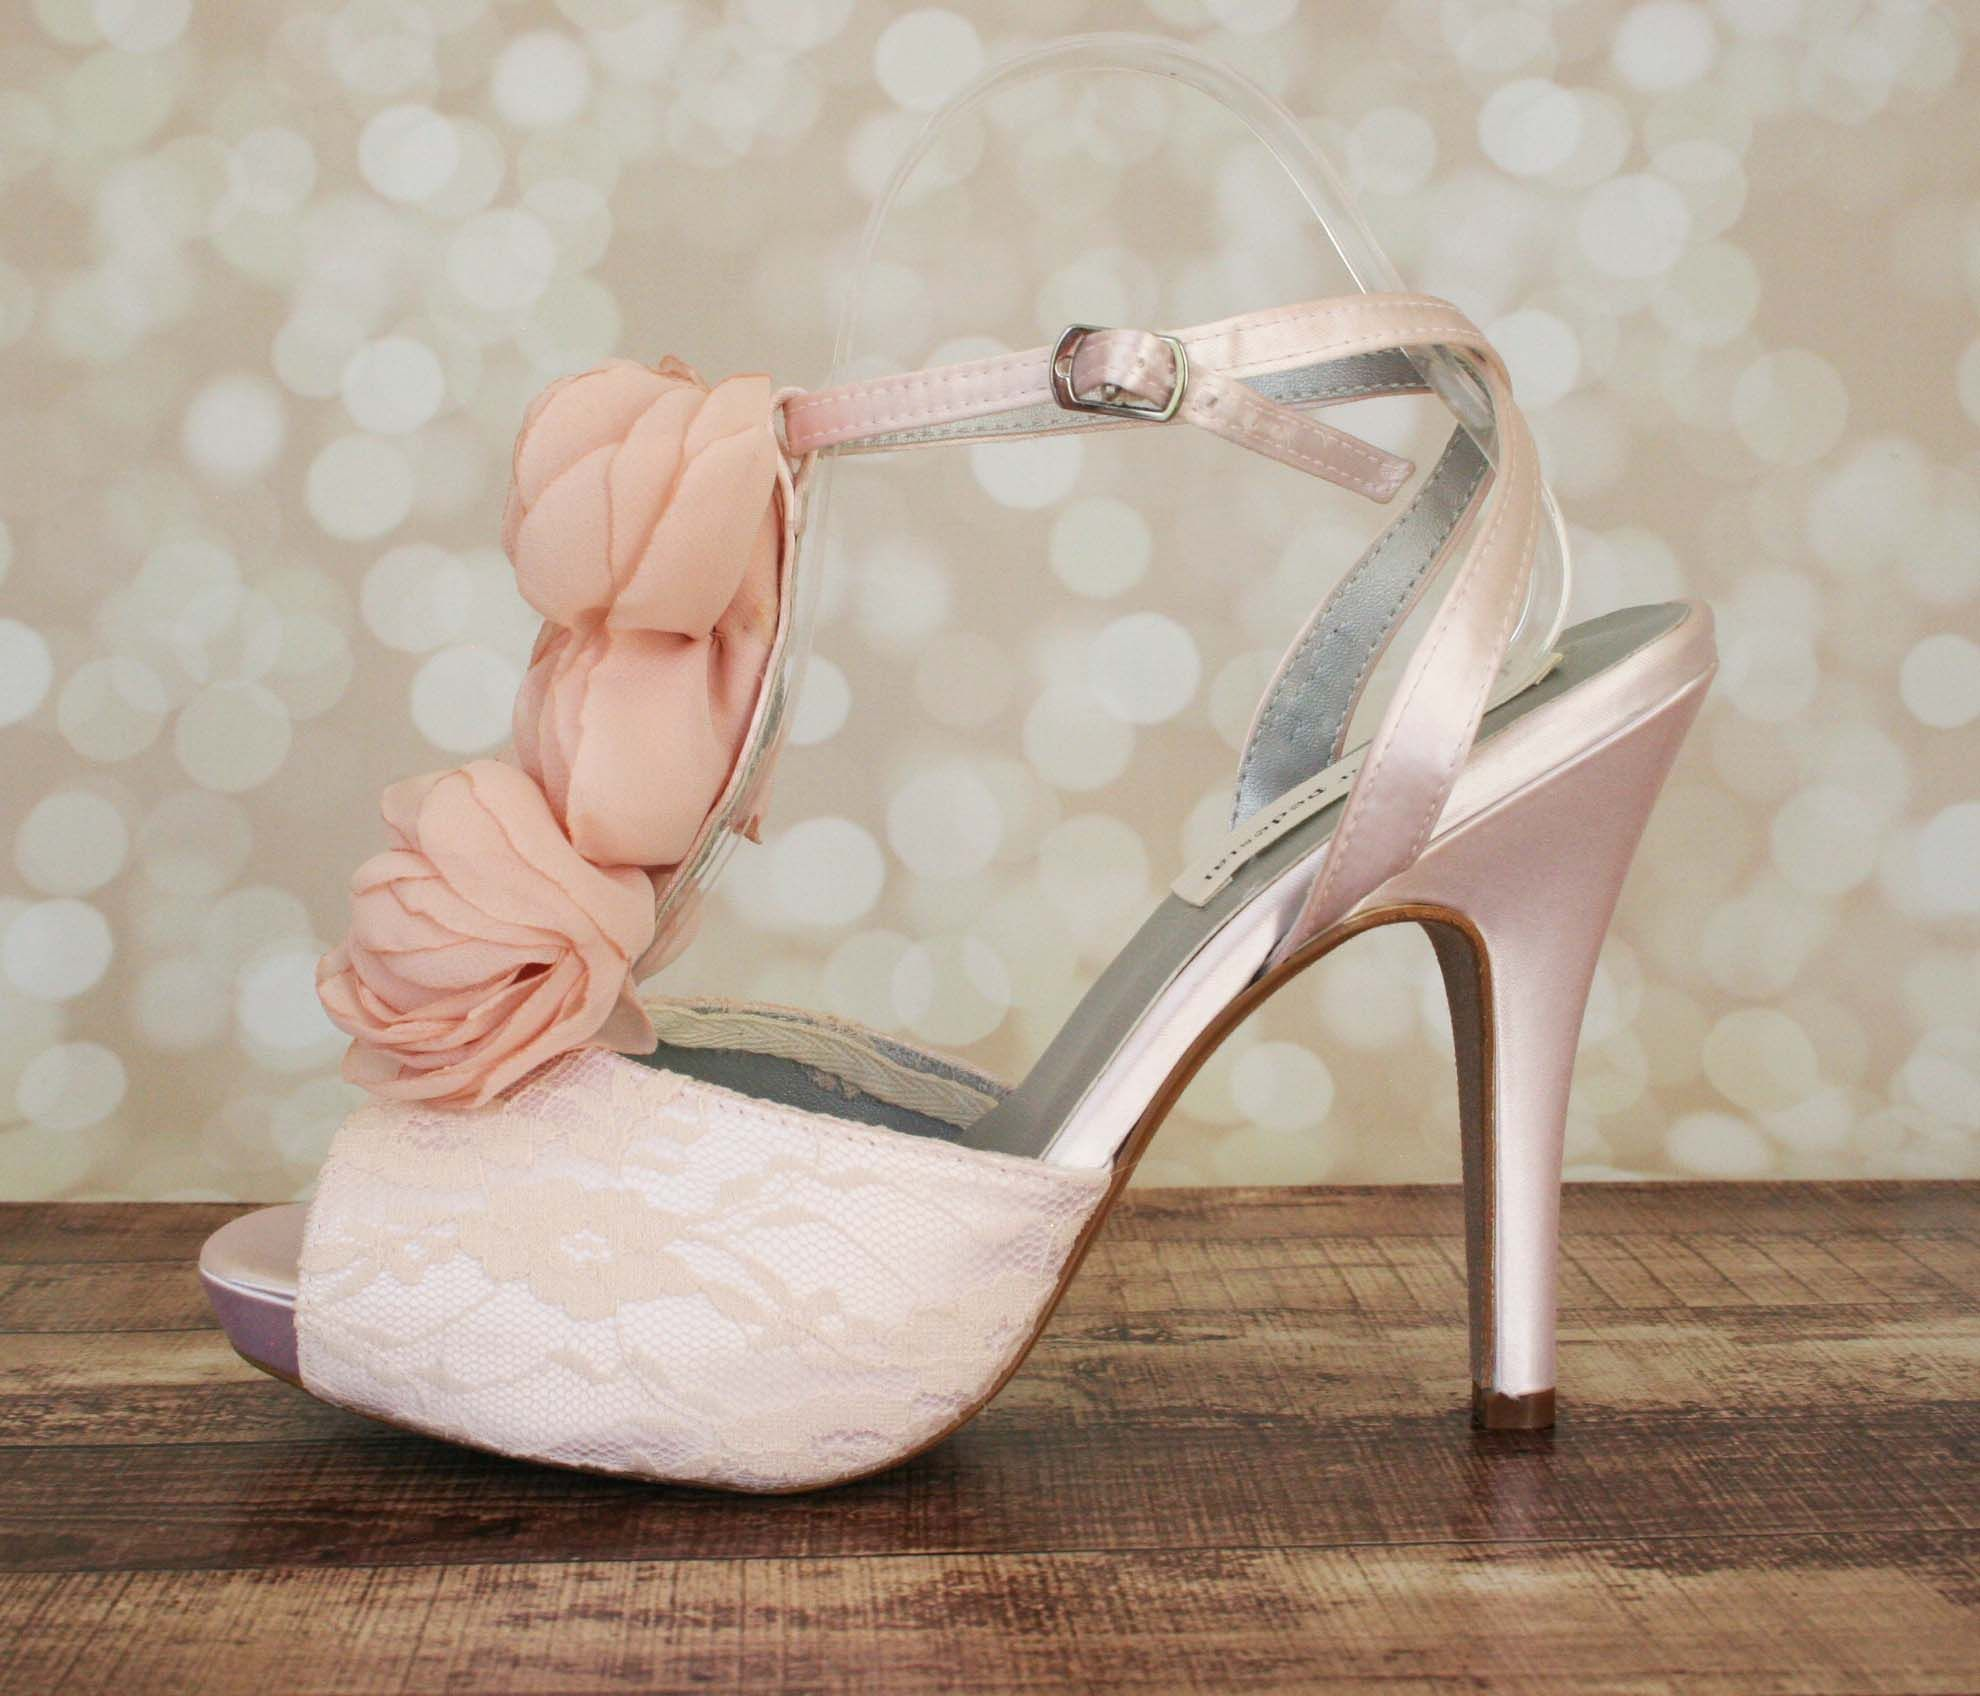 1b5d1a30f24 Blush Platform Peep Toe T-Strap Custom Wedding Shoes with Lace Overlay and  Chiffon Flower Accents by Ellie Wren